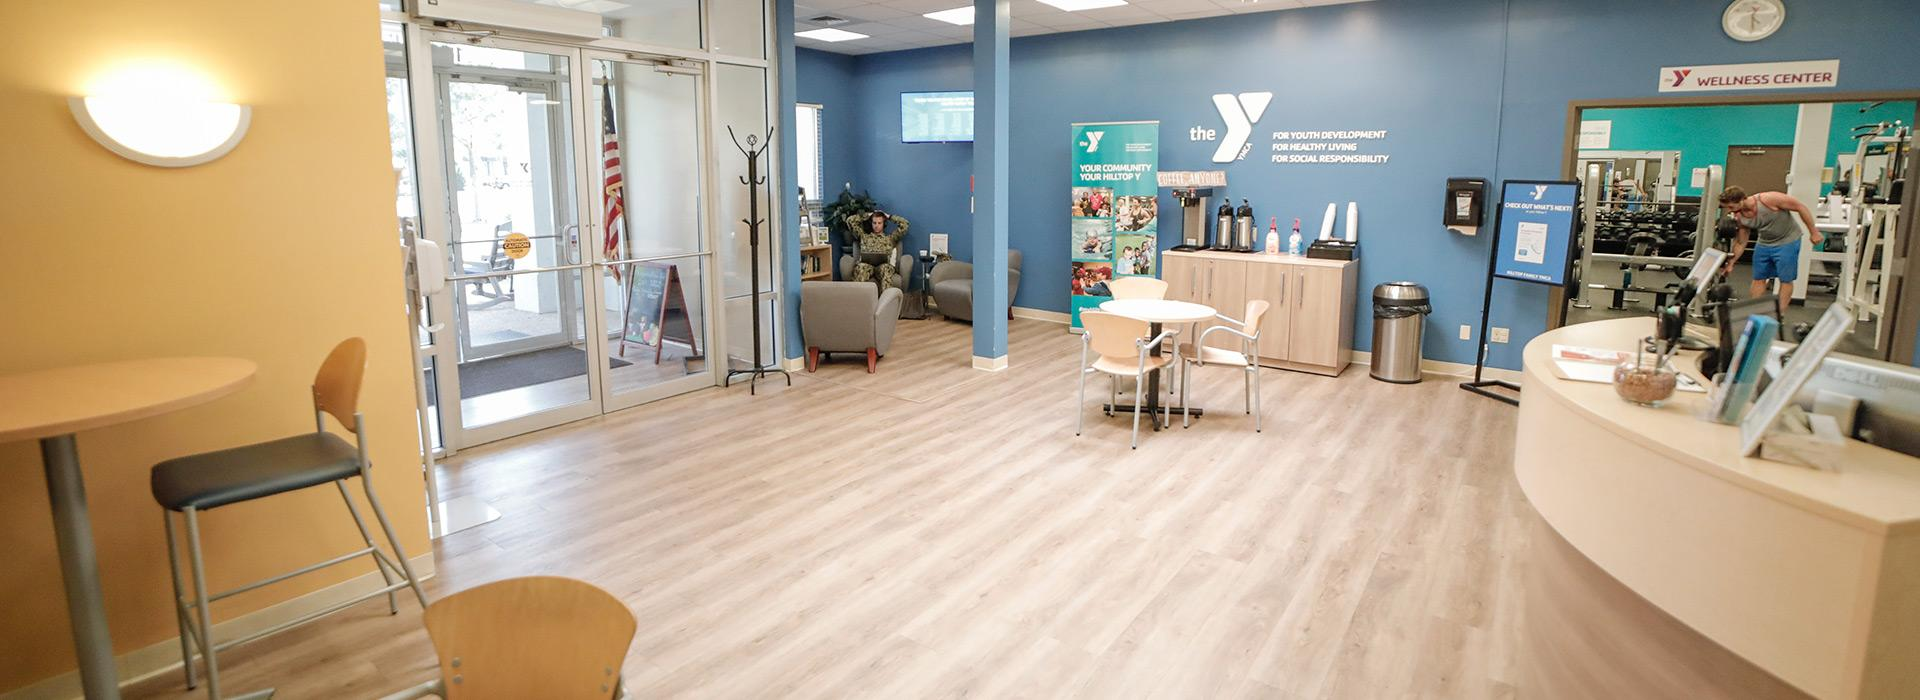 Lobby of Hilltop Family YMCA